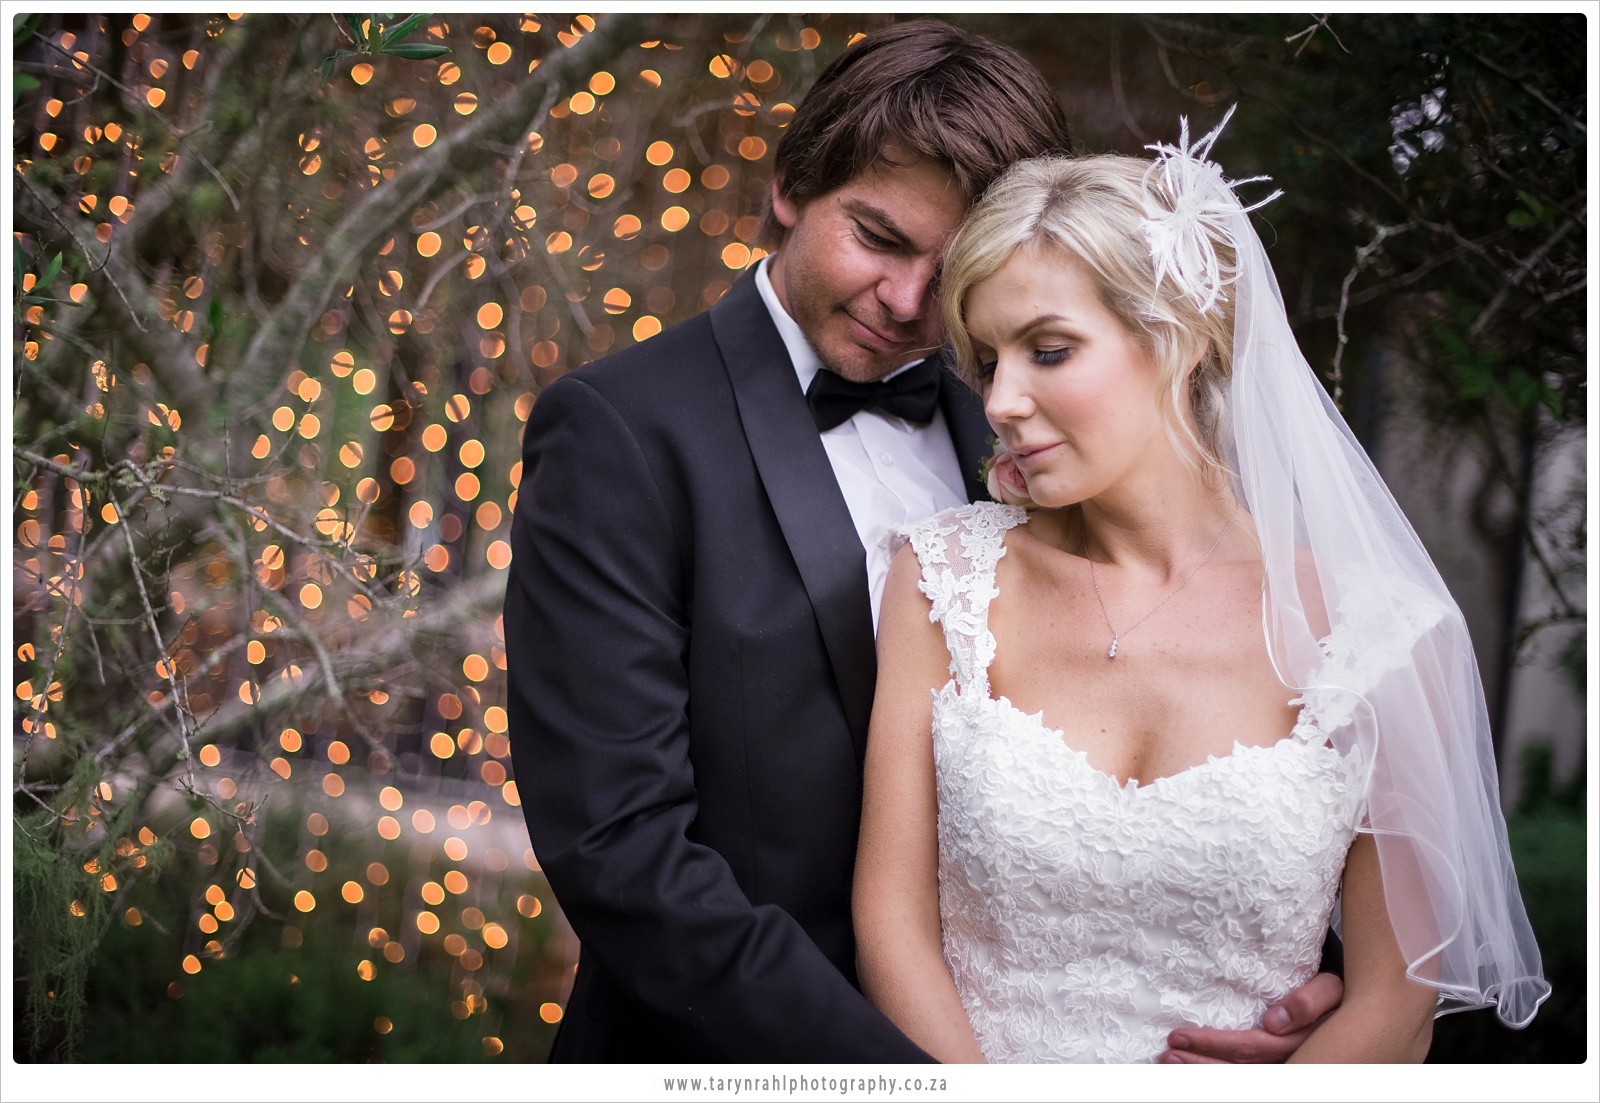 Nina and Steve | wedding at Forrest Hall Estate, Plettenberg Bay